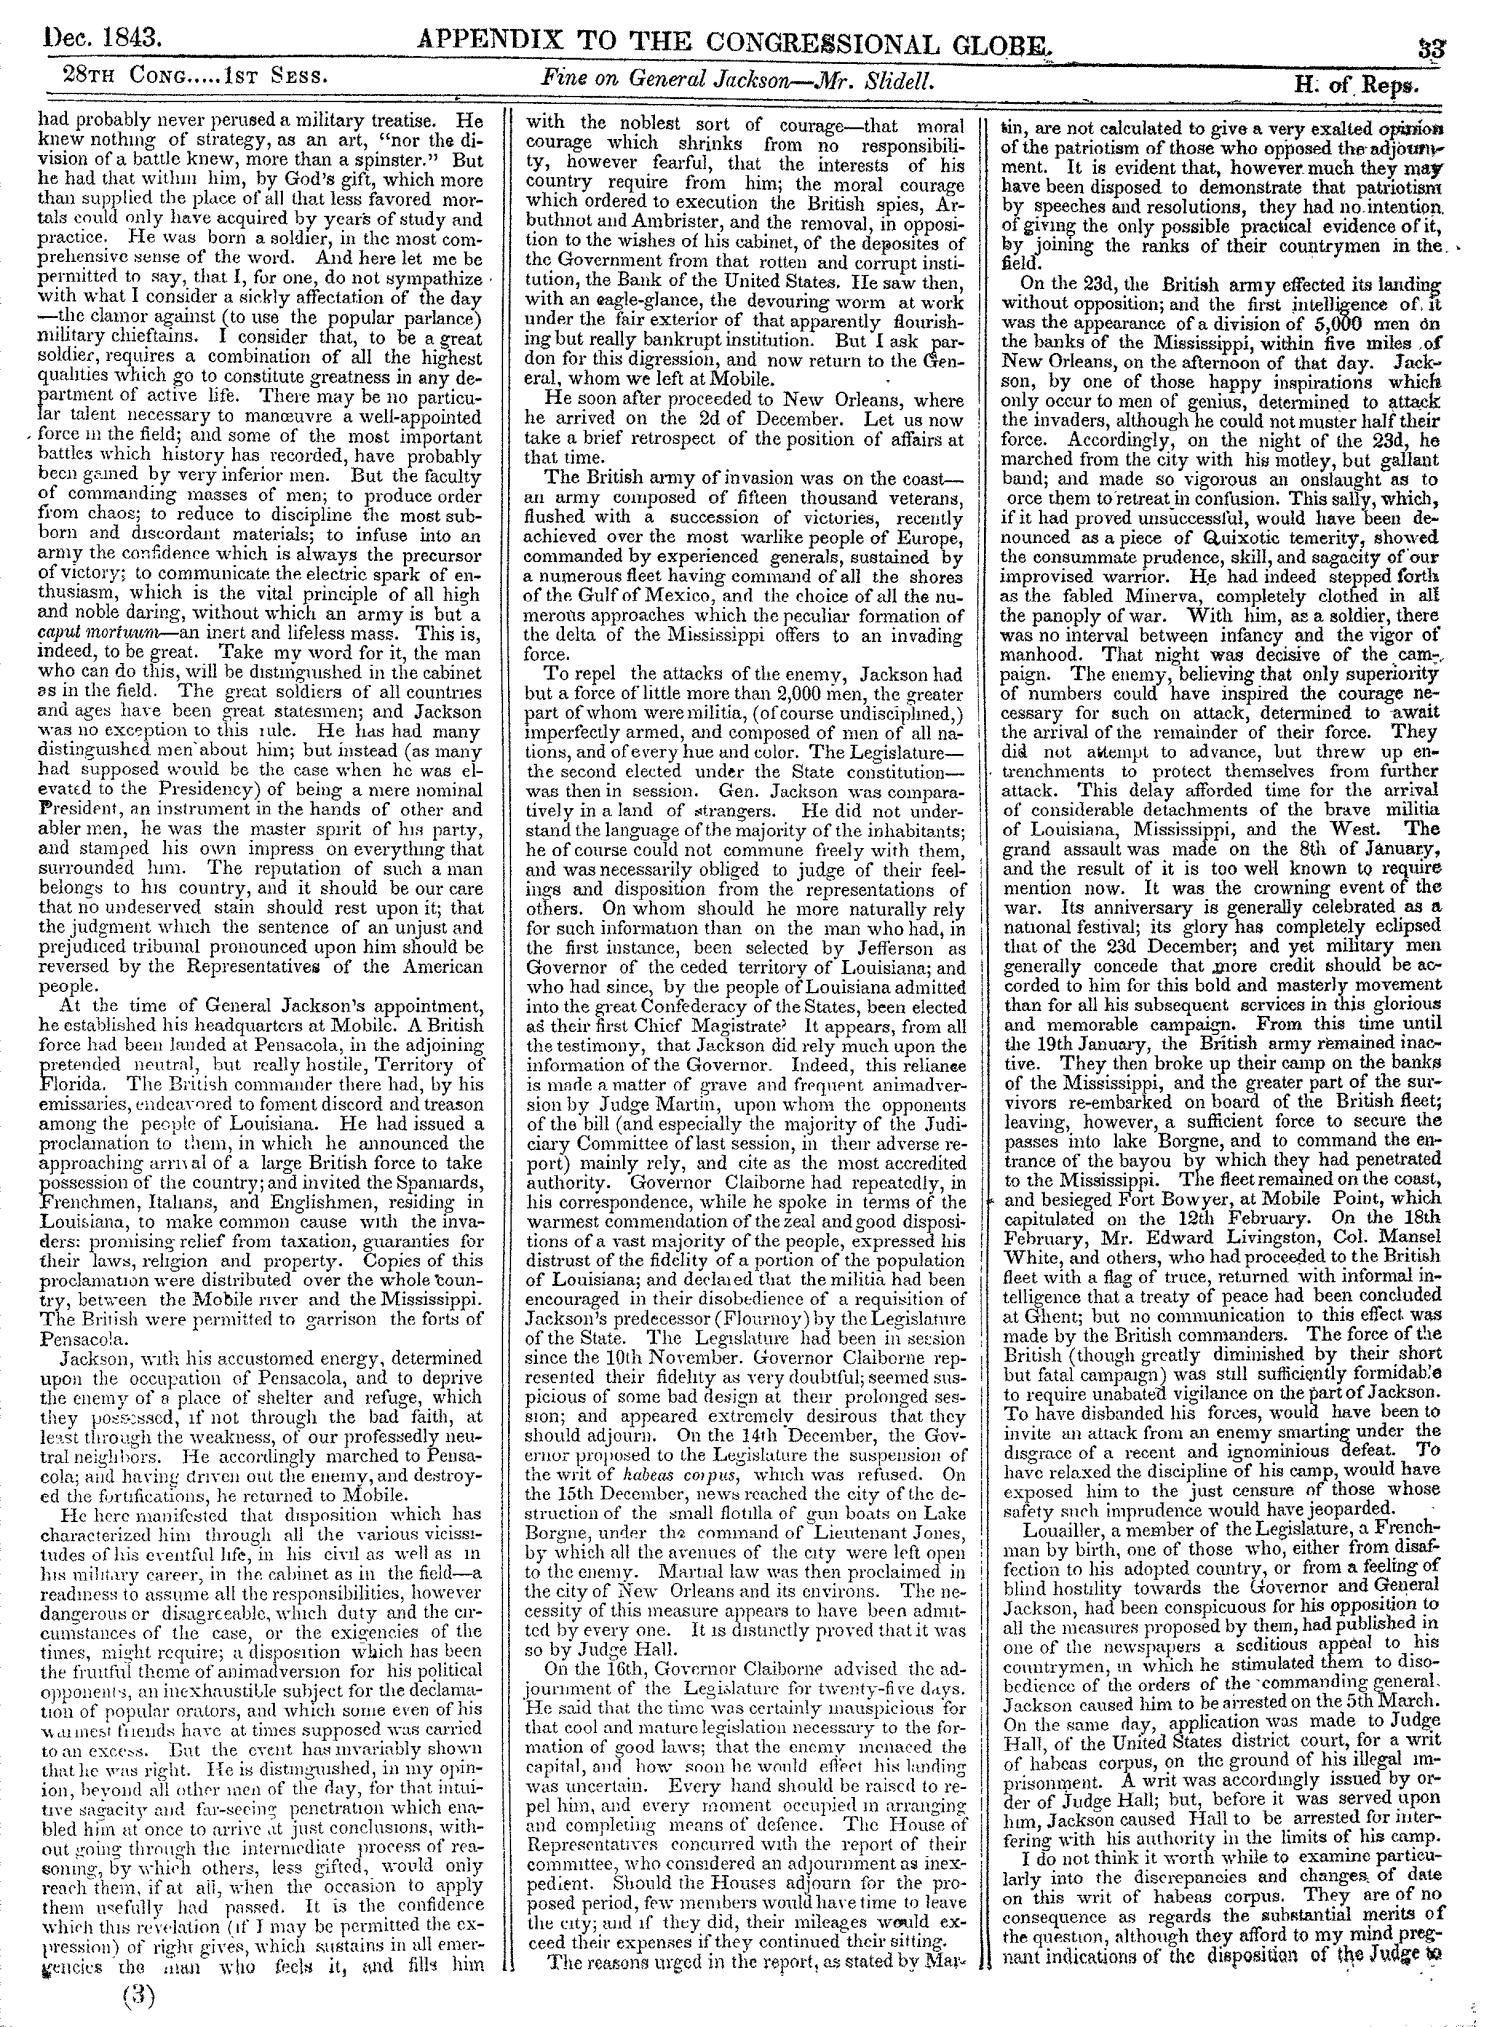 The Congressional Globe, Volume 13, Part 2: Twenty-Eighth Congress, First Session                                                                                                      33